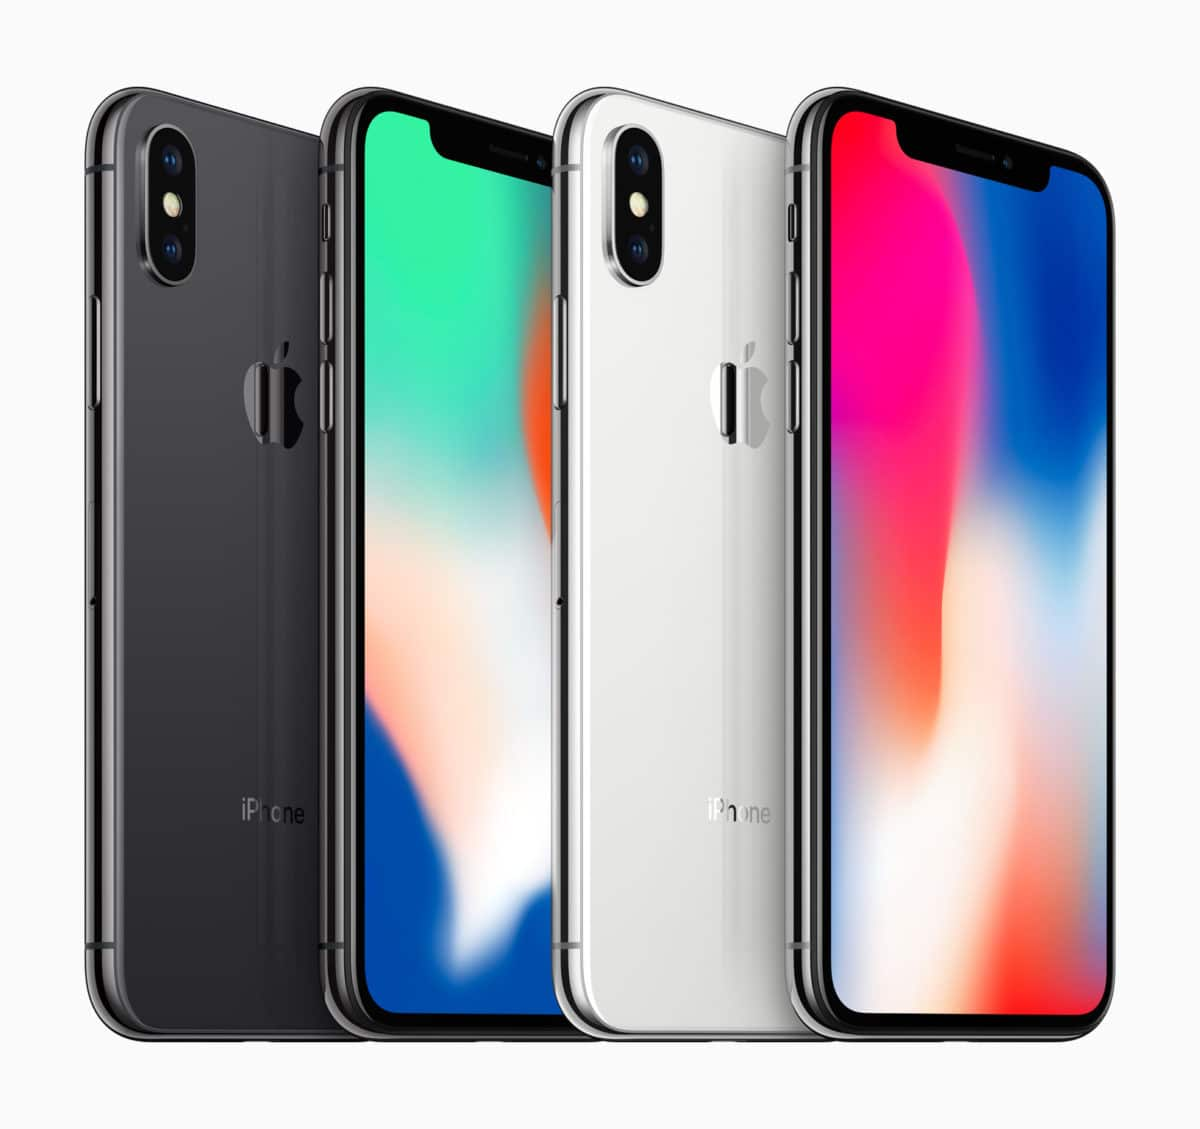 Signal jammer Syrian Arab Republic | How to get the best deal on the iPhone X